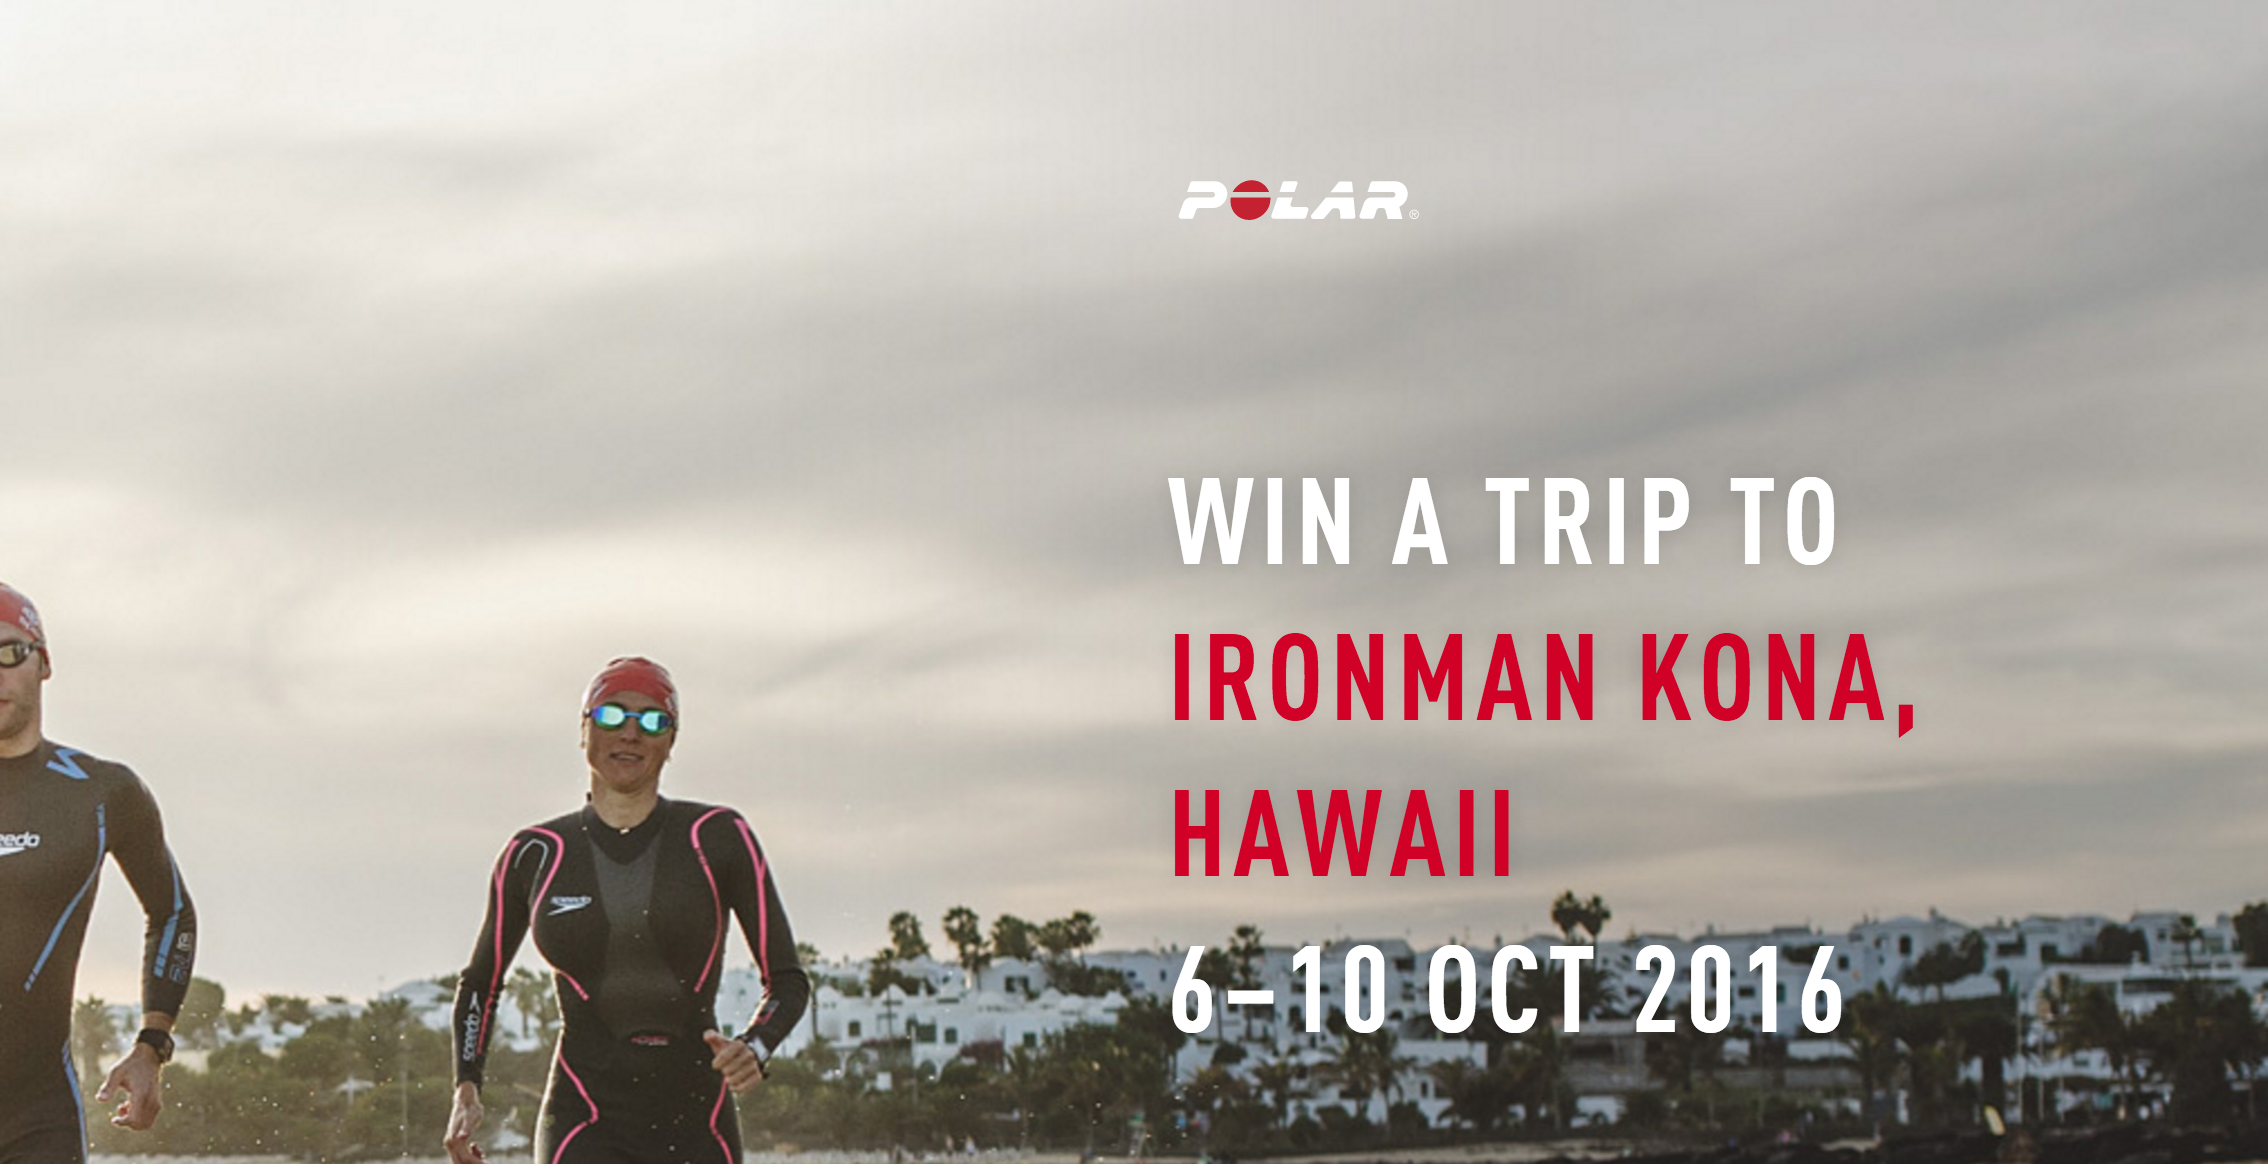 60 Seconds to Kona   Win a trip to see Ironman Kona   Polar Global